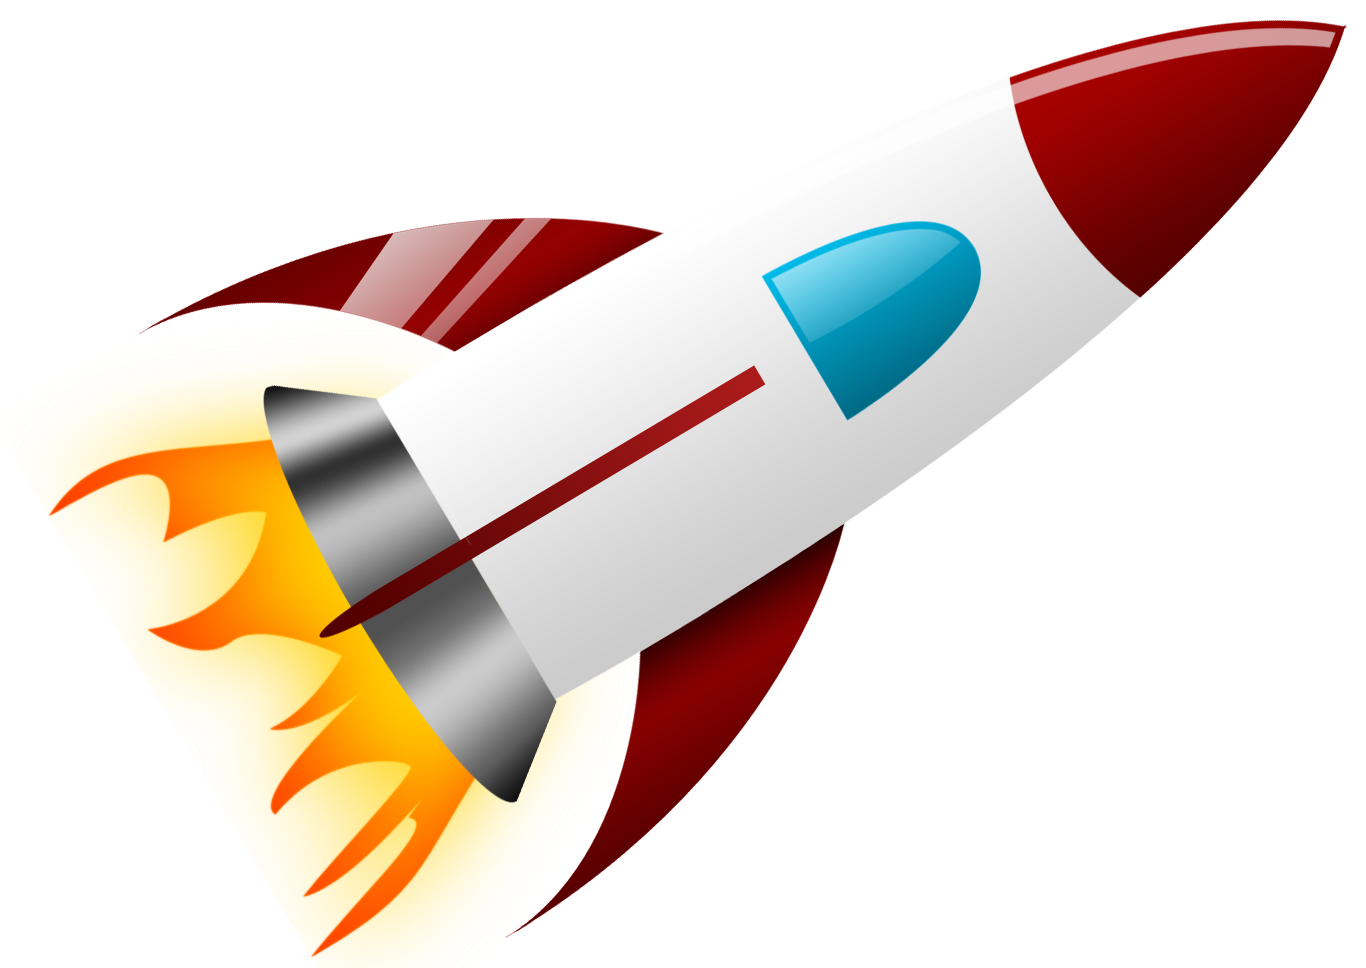 High Resolution Rocket Png Icon image #40802